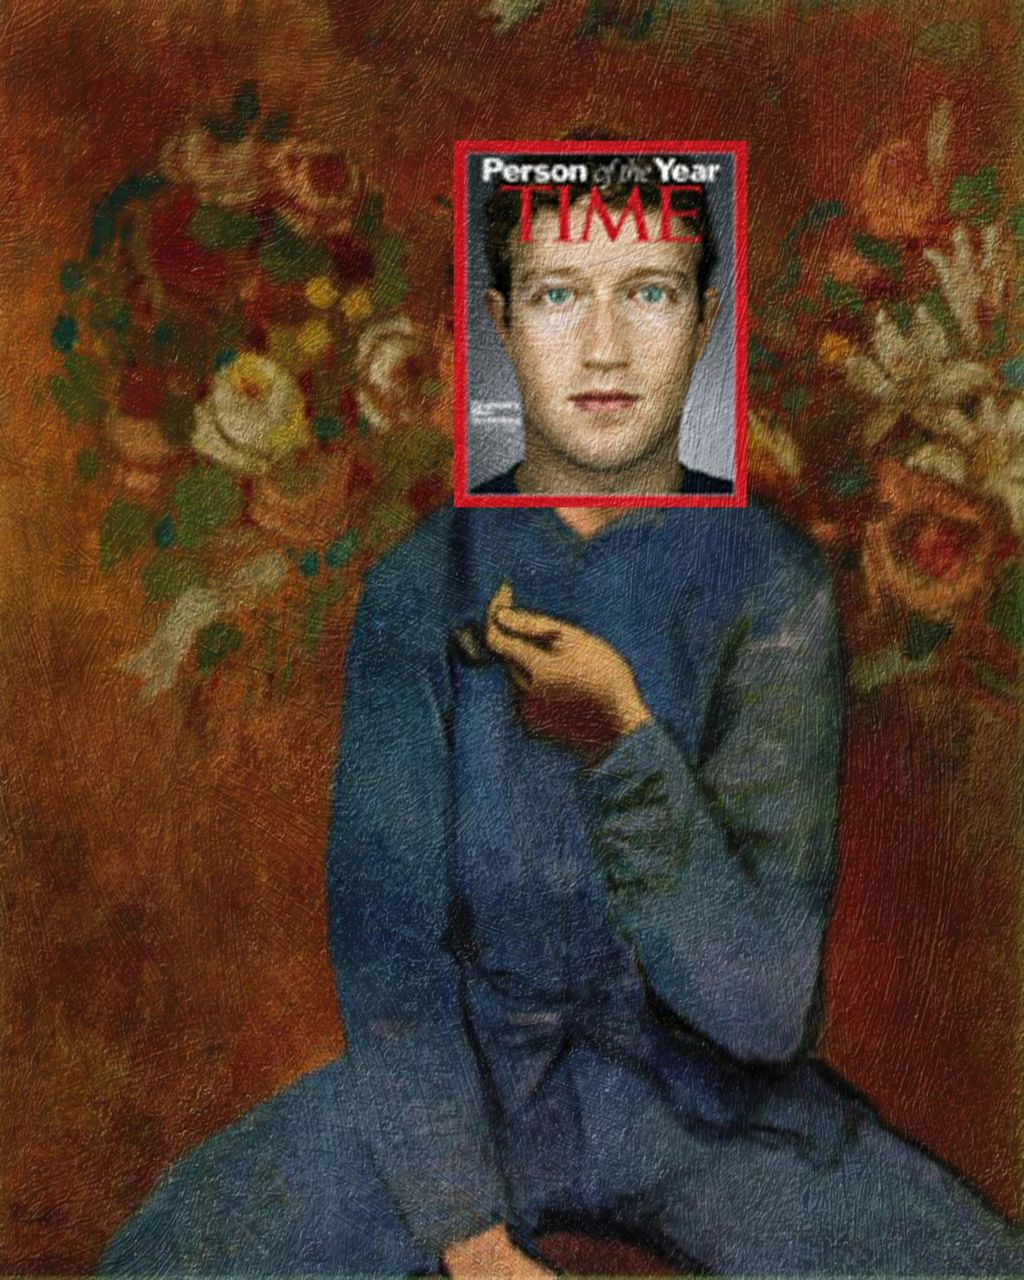 Quirky Magazine covers